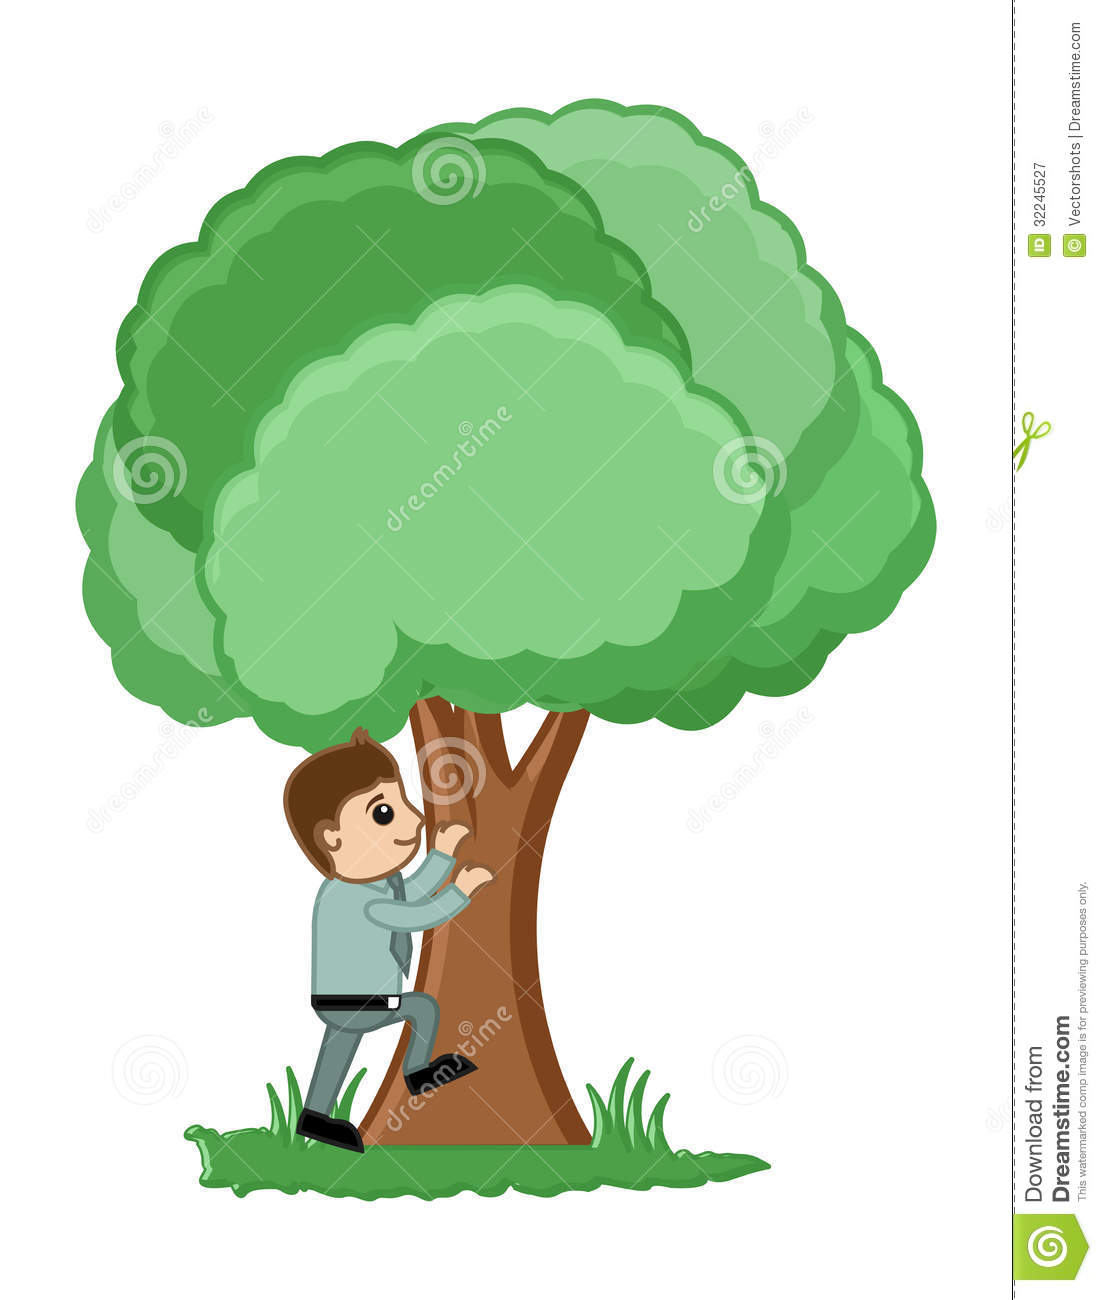 Conceptual Drawing Art of Young Cartoon Man Trying to Climb Tree ...